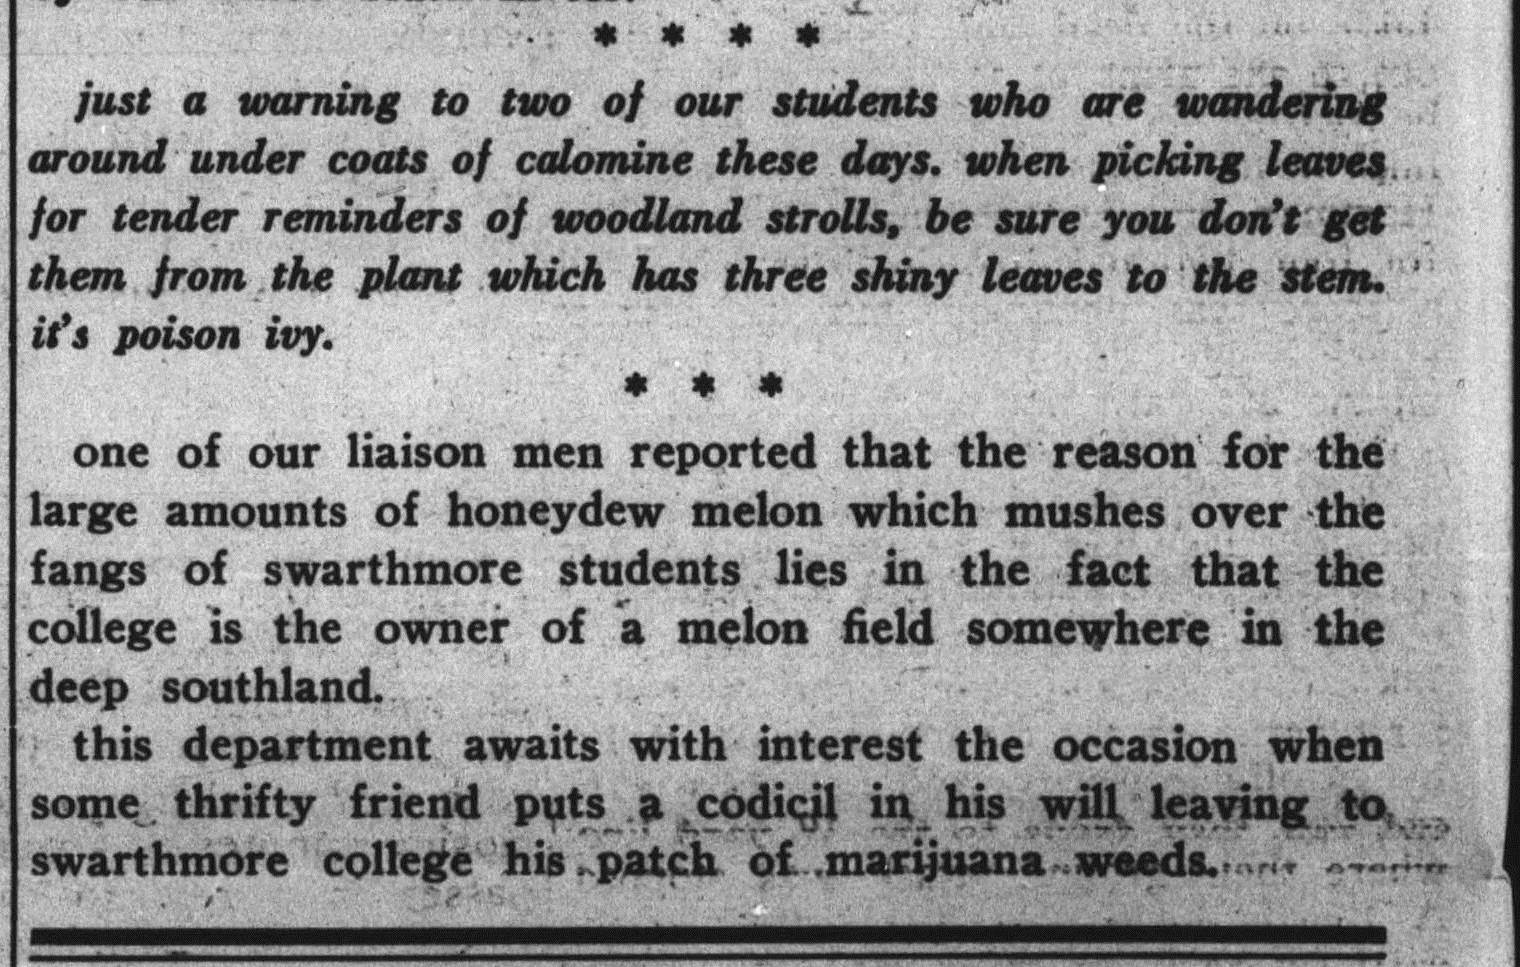 Snippet from Swarthmore College Phoenix article from 1937